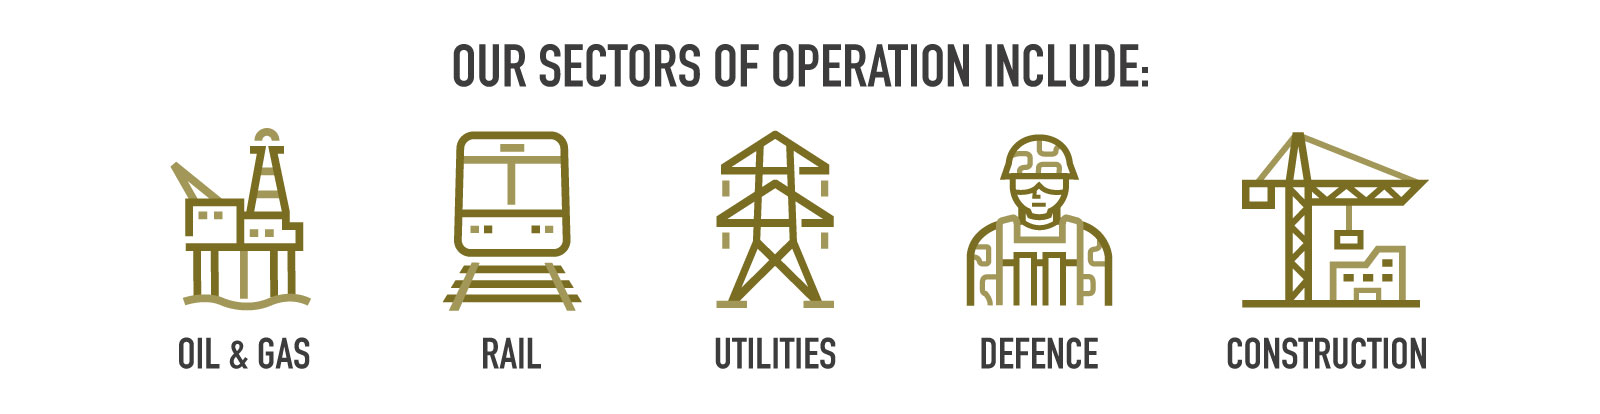 Lode Industry Sectors: Oil & Gas, Rail, Utilities, Defence, Construction